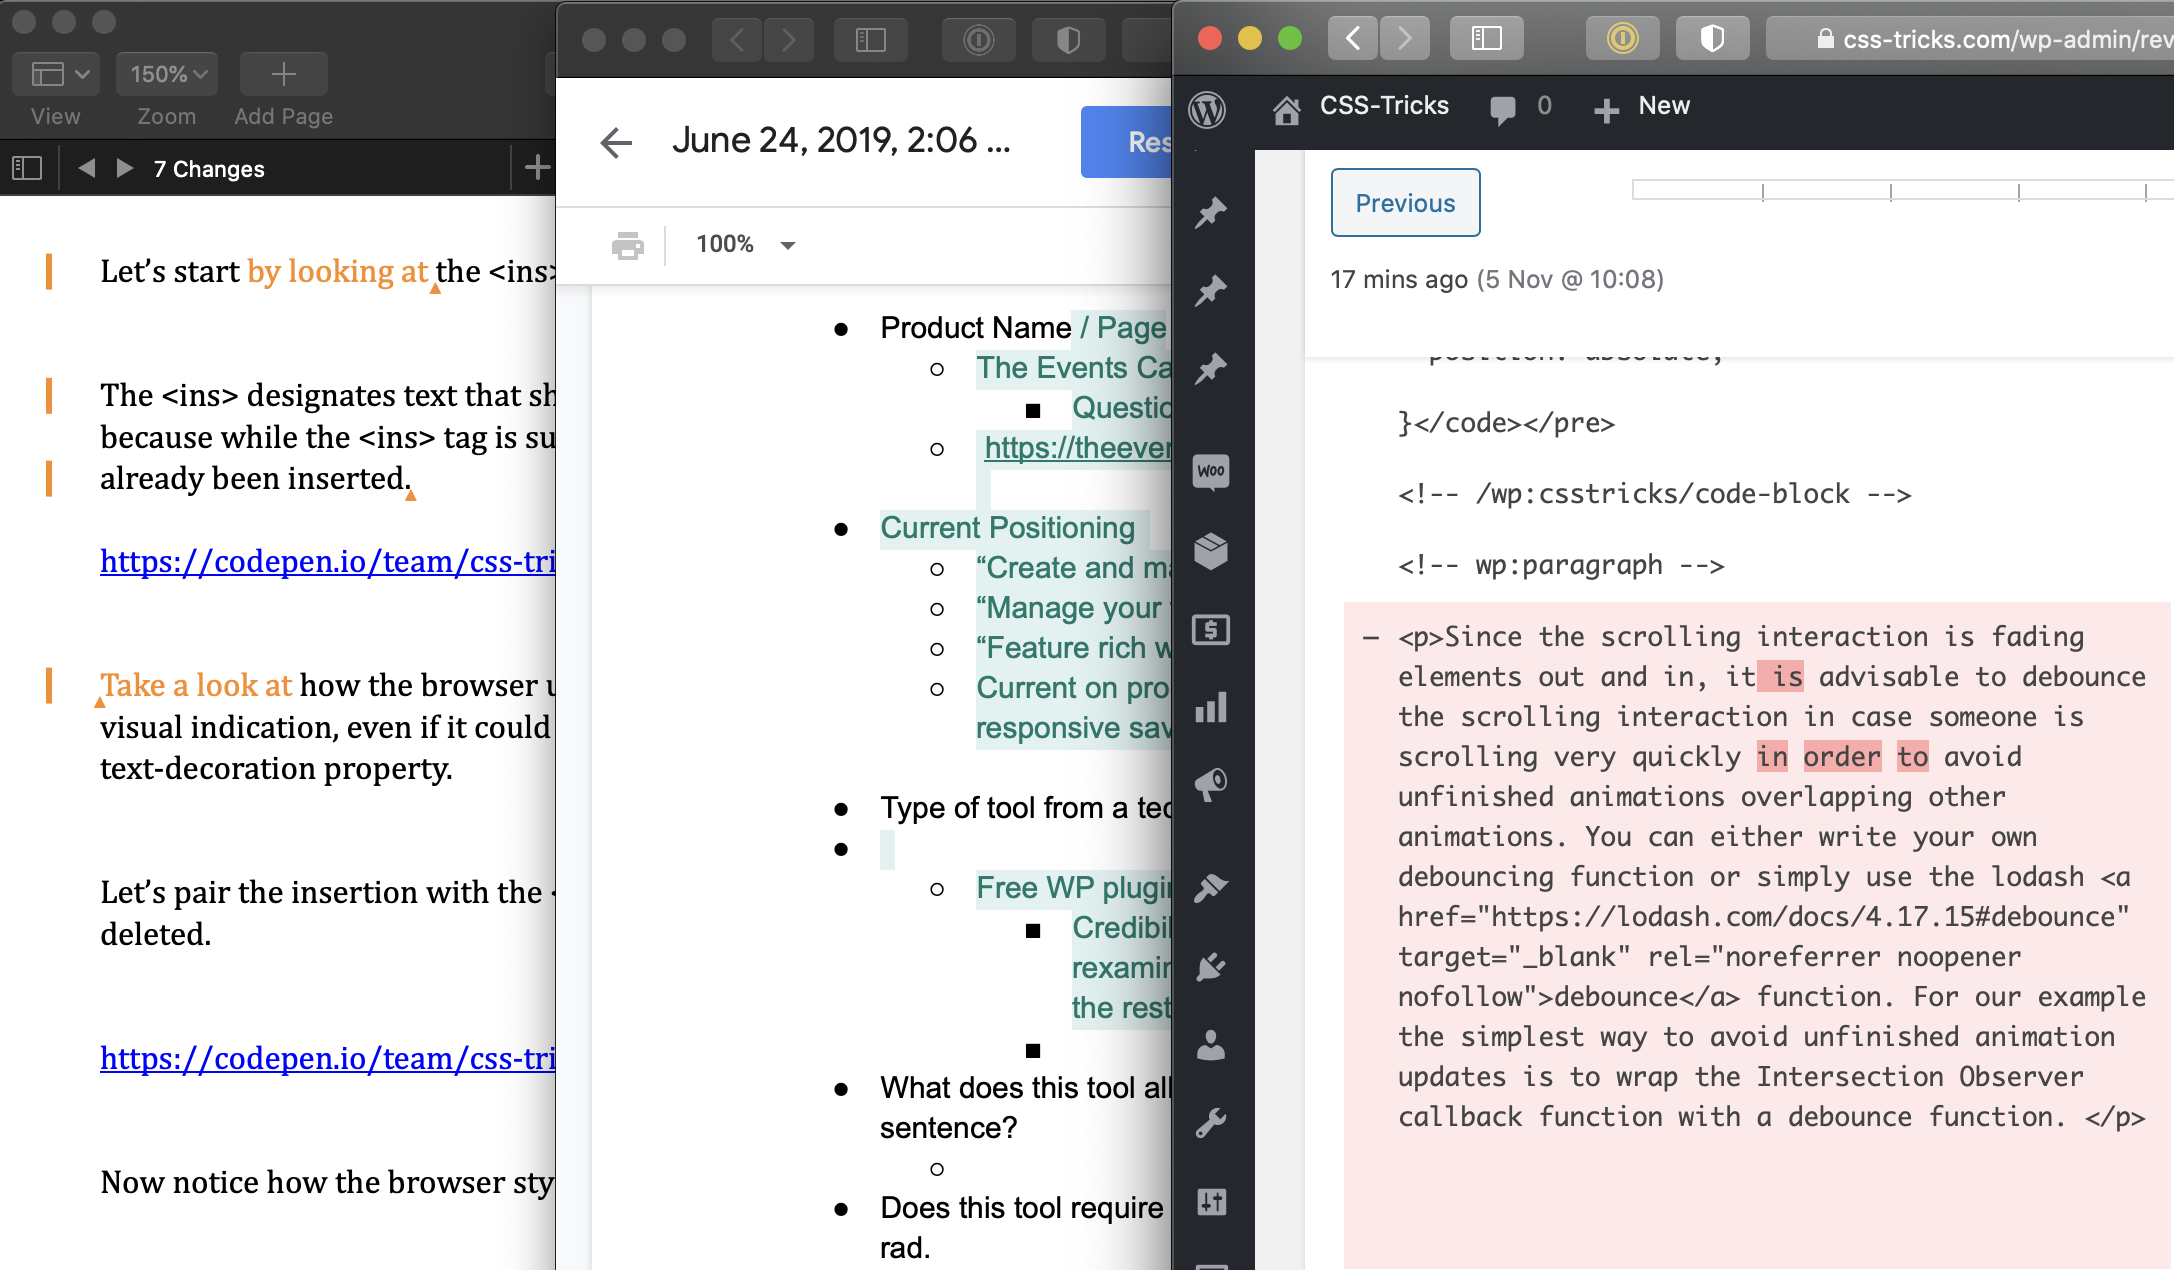 Side-by-side screenshots of how Pages, Google Docs and WordPress display tracked changes.